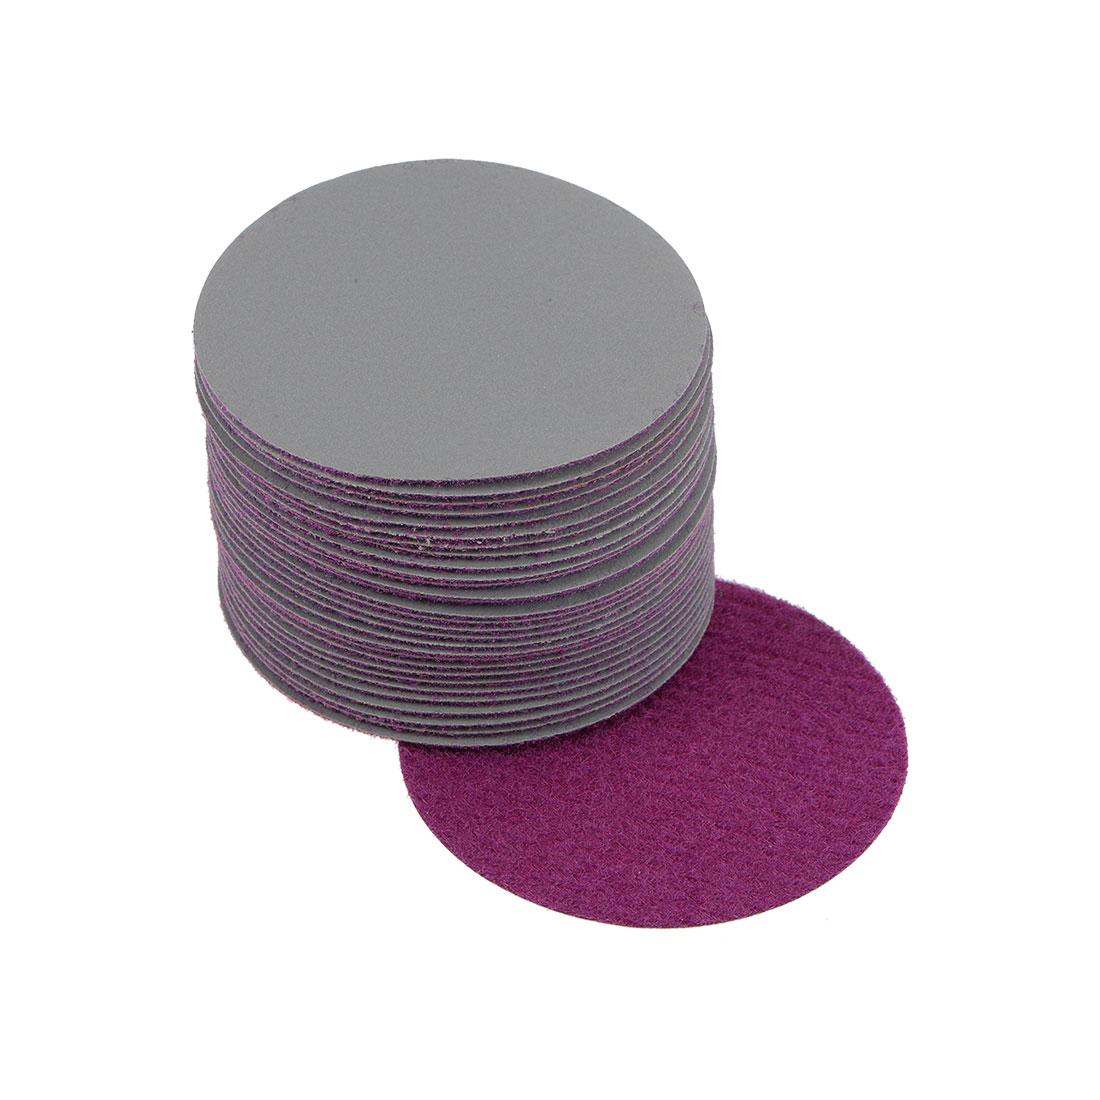 2 inch Wet Dry Discs 2000 Grit Hook and Loop Sanding Disc Silicon Carbide 30pcs